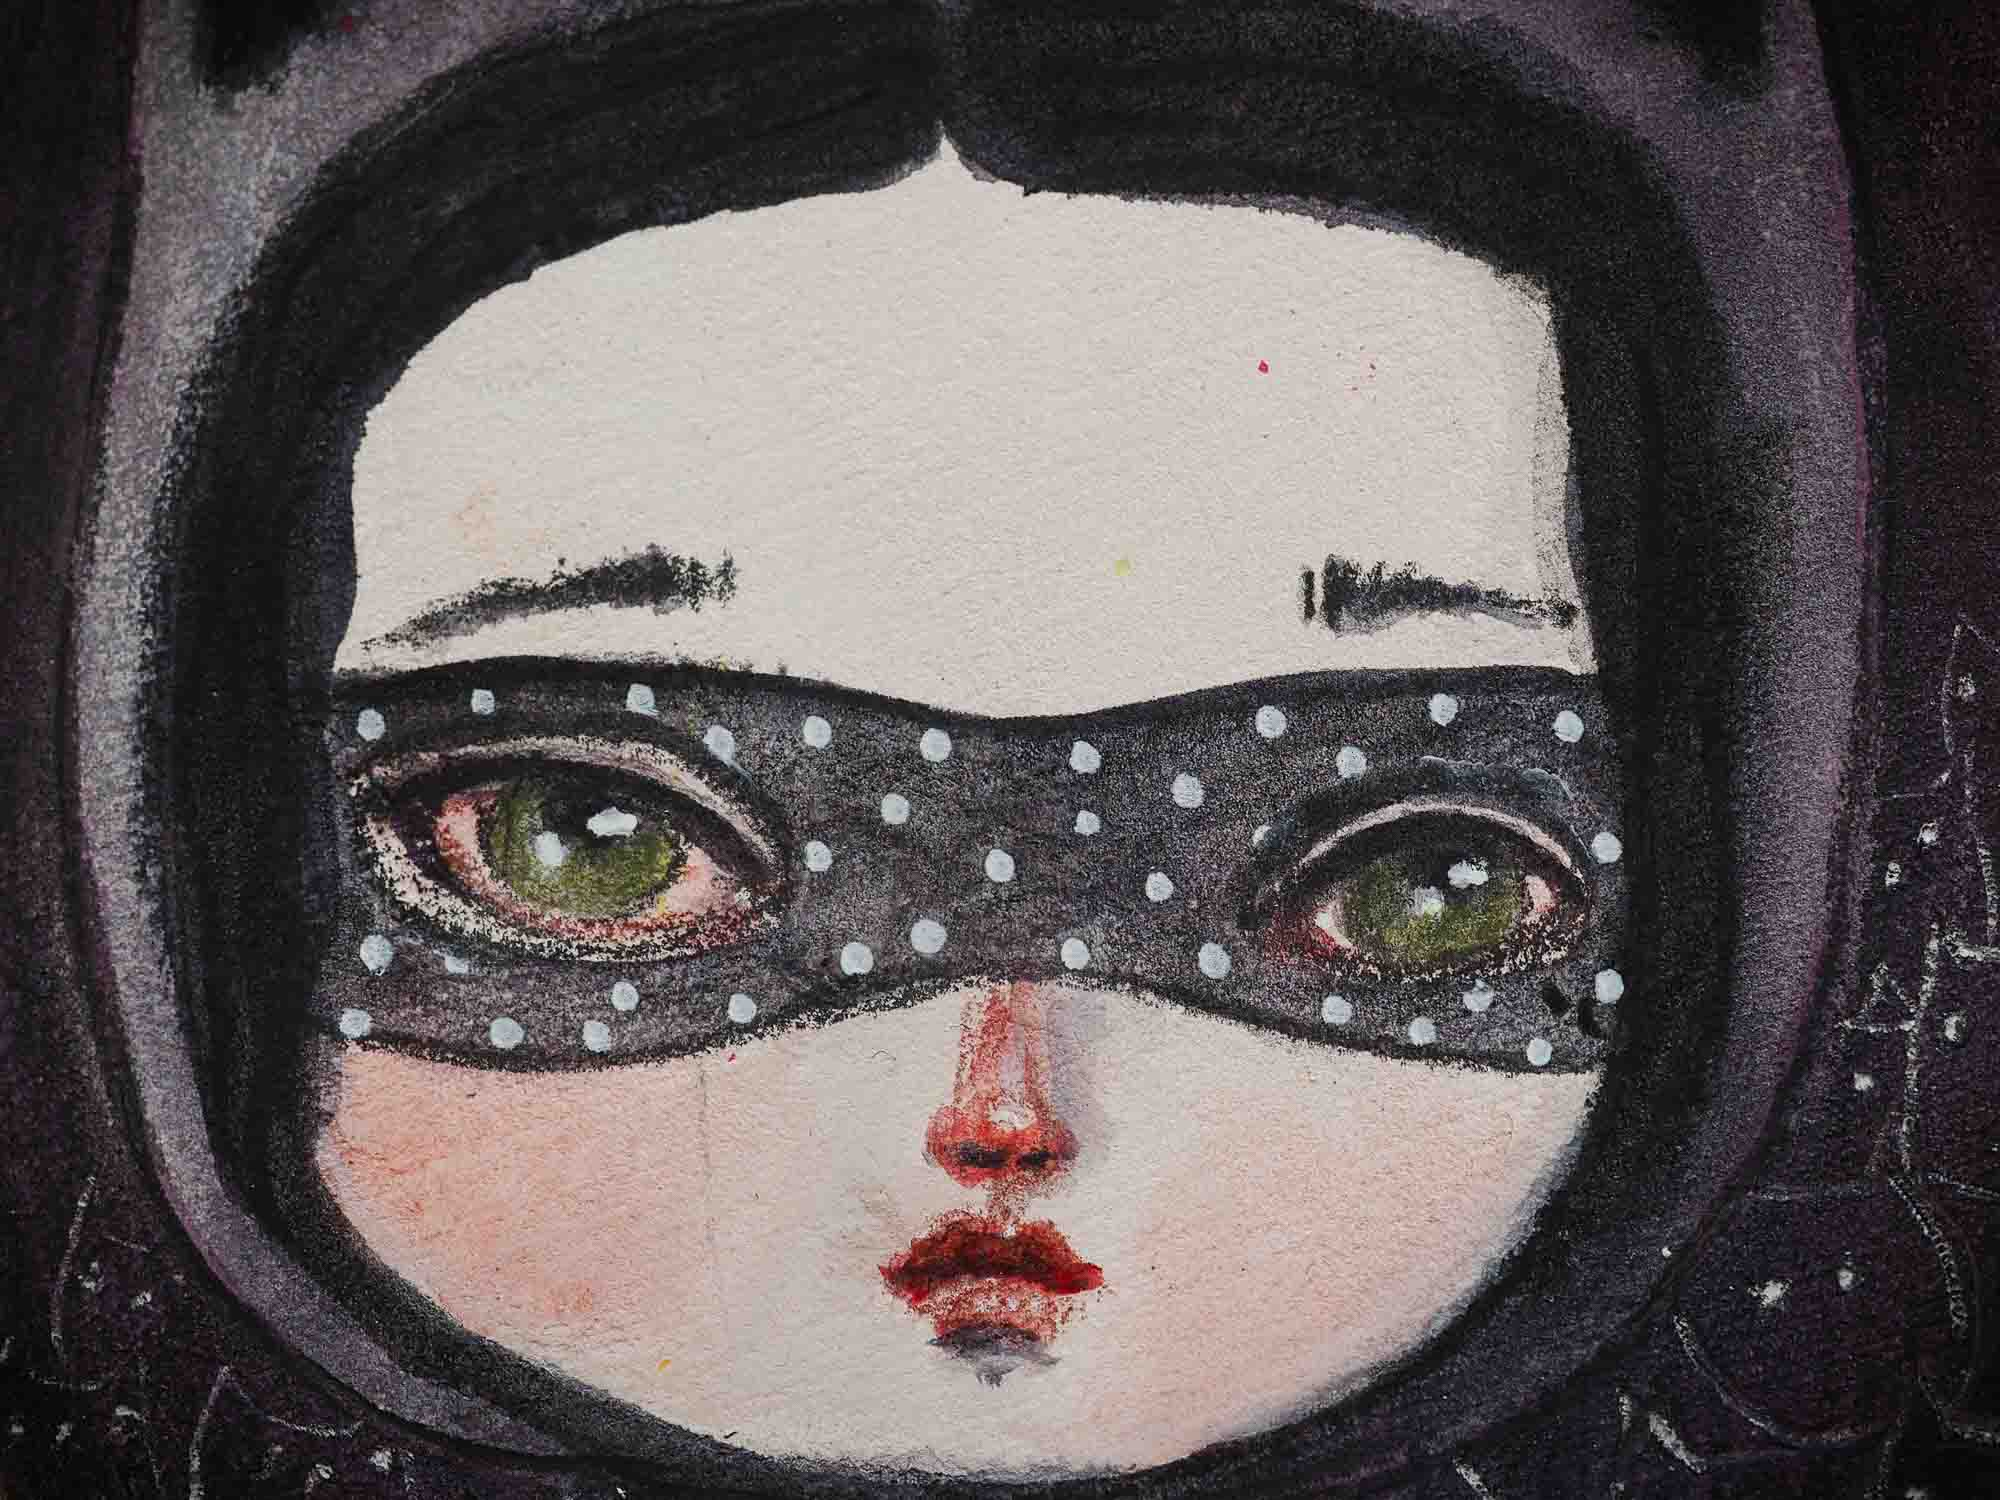 When I think of Cat Lady, I imagine a powerful woman with an army of cats at her disposal, so I painted this little girl in an oval wood canvas. I used watercolors to create an army of black cats with a mysterious ambiance where the cats are lookin right back at you, lurking in the shadows waiting to do her bidding.